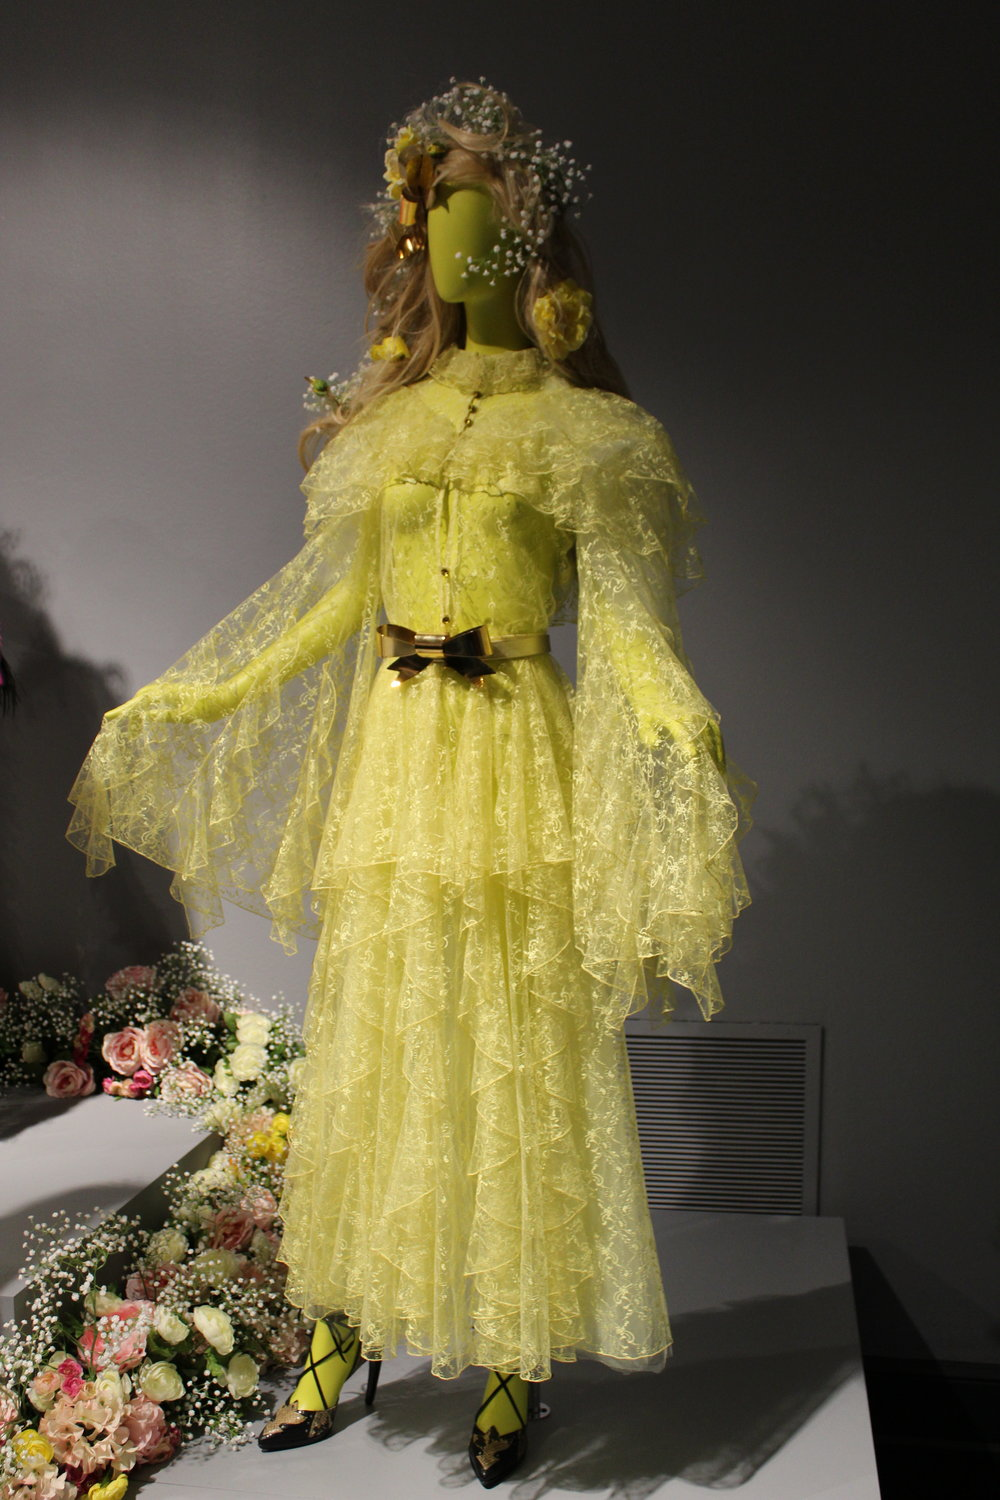 I enjoy the color itself, how the designers have paired solid yellow tights with the overall aesthetic of the dress, the ruffle layering of the fabric throughout the dress, along with the dramatic arms.